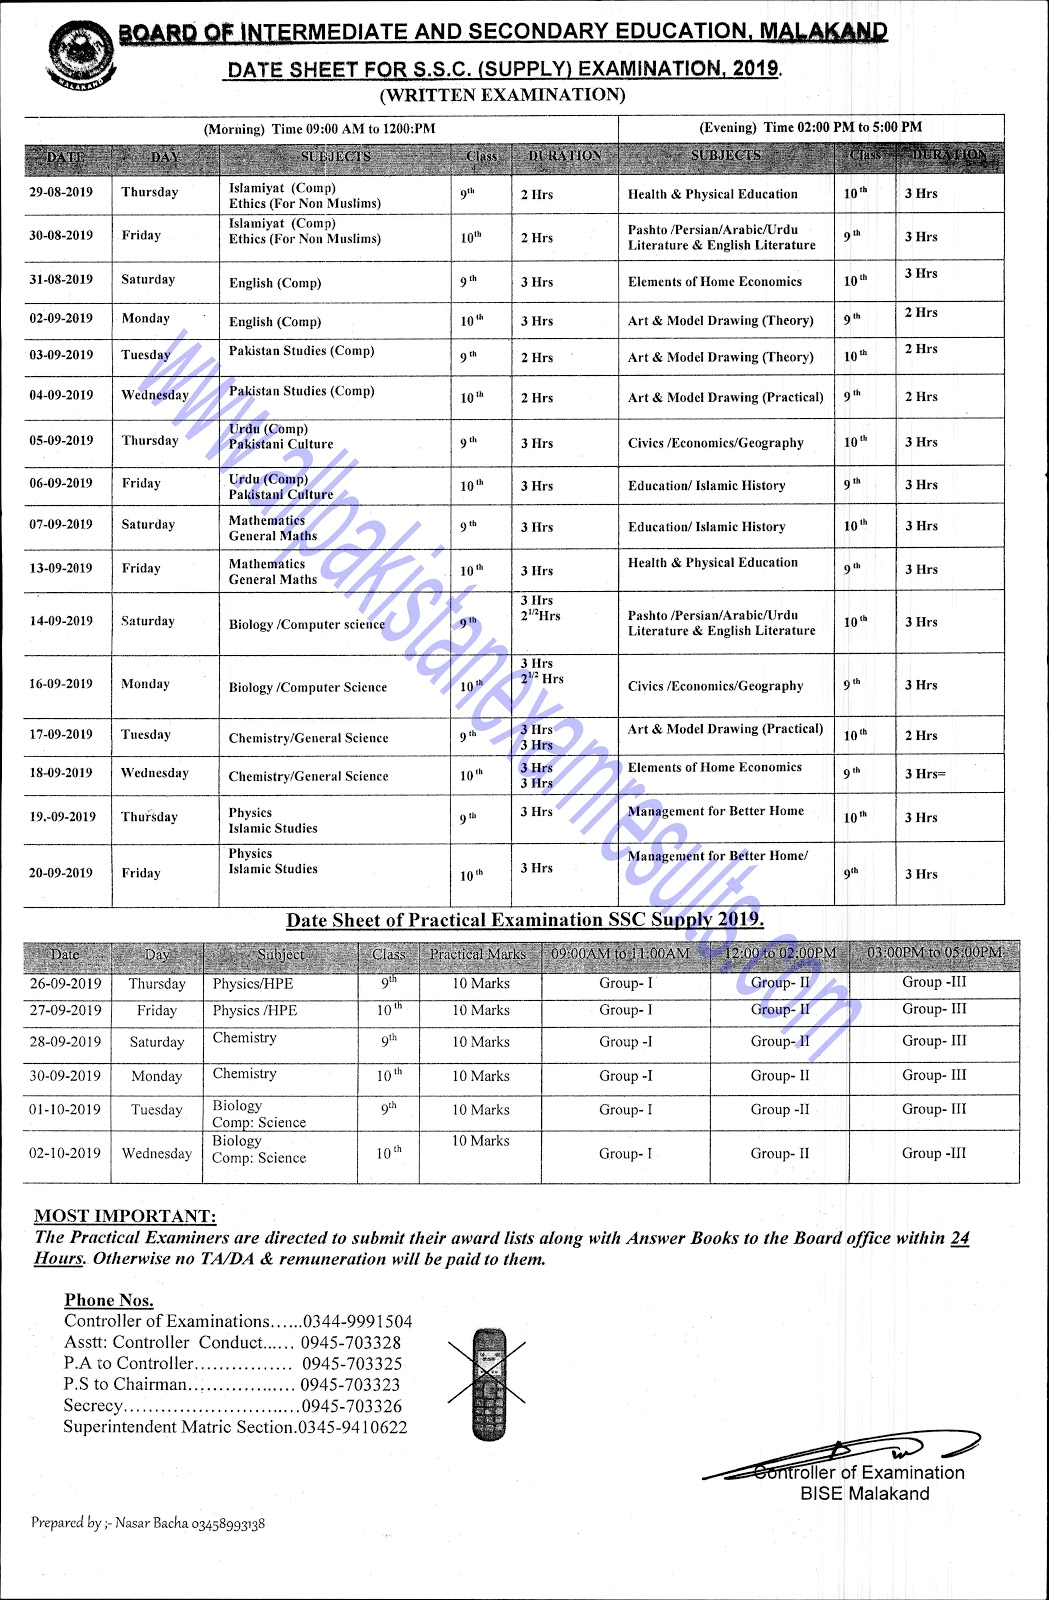 Date Sheet For SSC Supplementary Malakand Board 2019